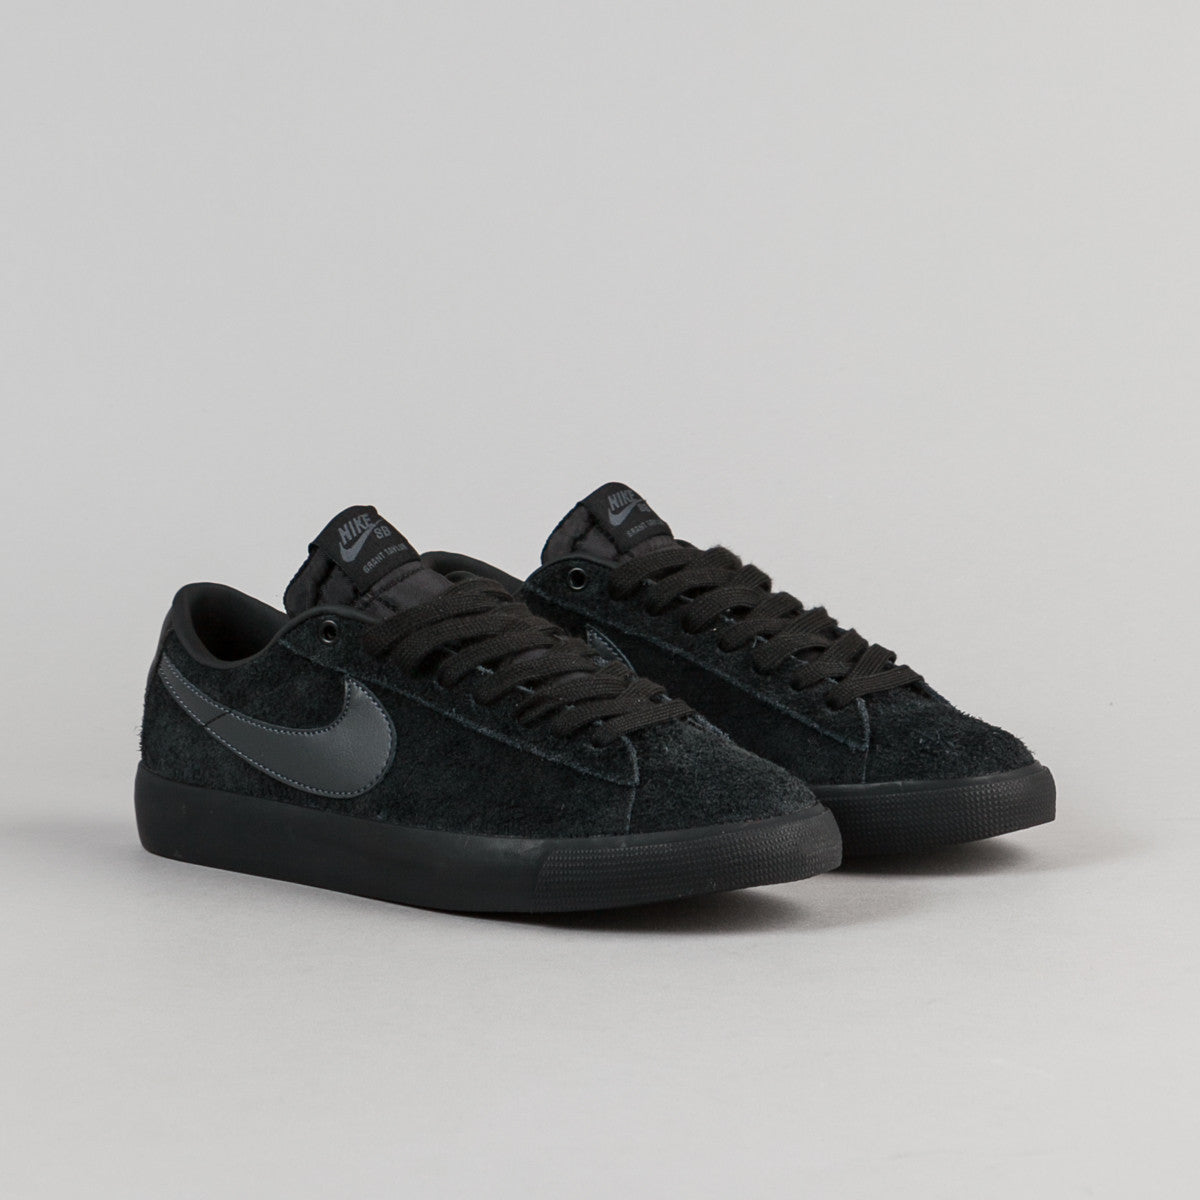 nike sb blazer low gt shoes black anthracite flatspot. Black Bedroom Furniture Sets. Home Design Ideas